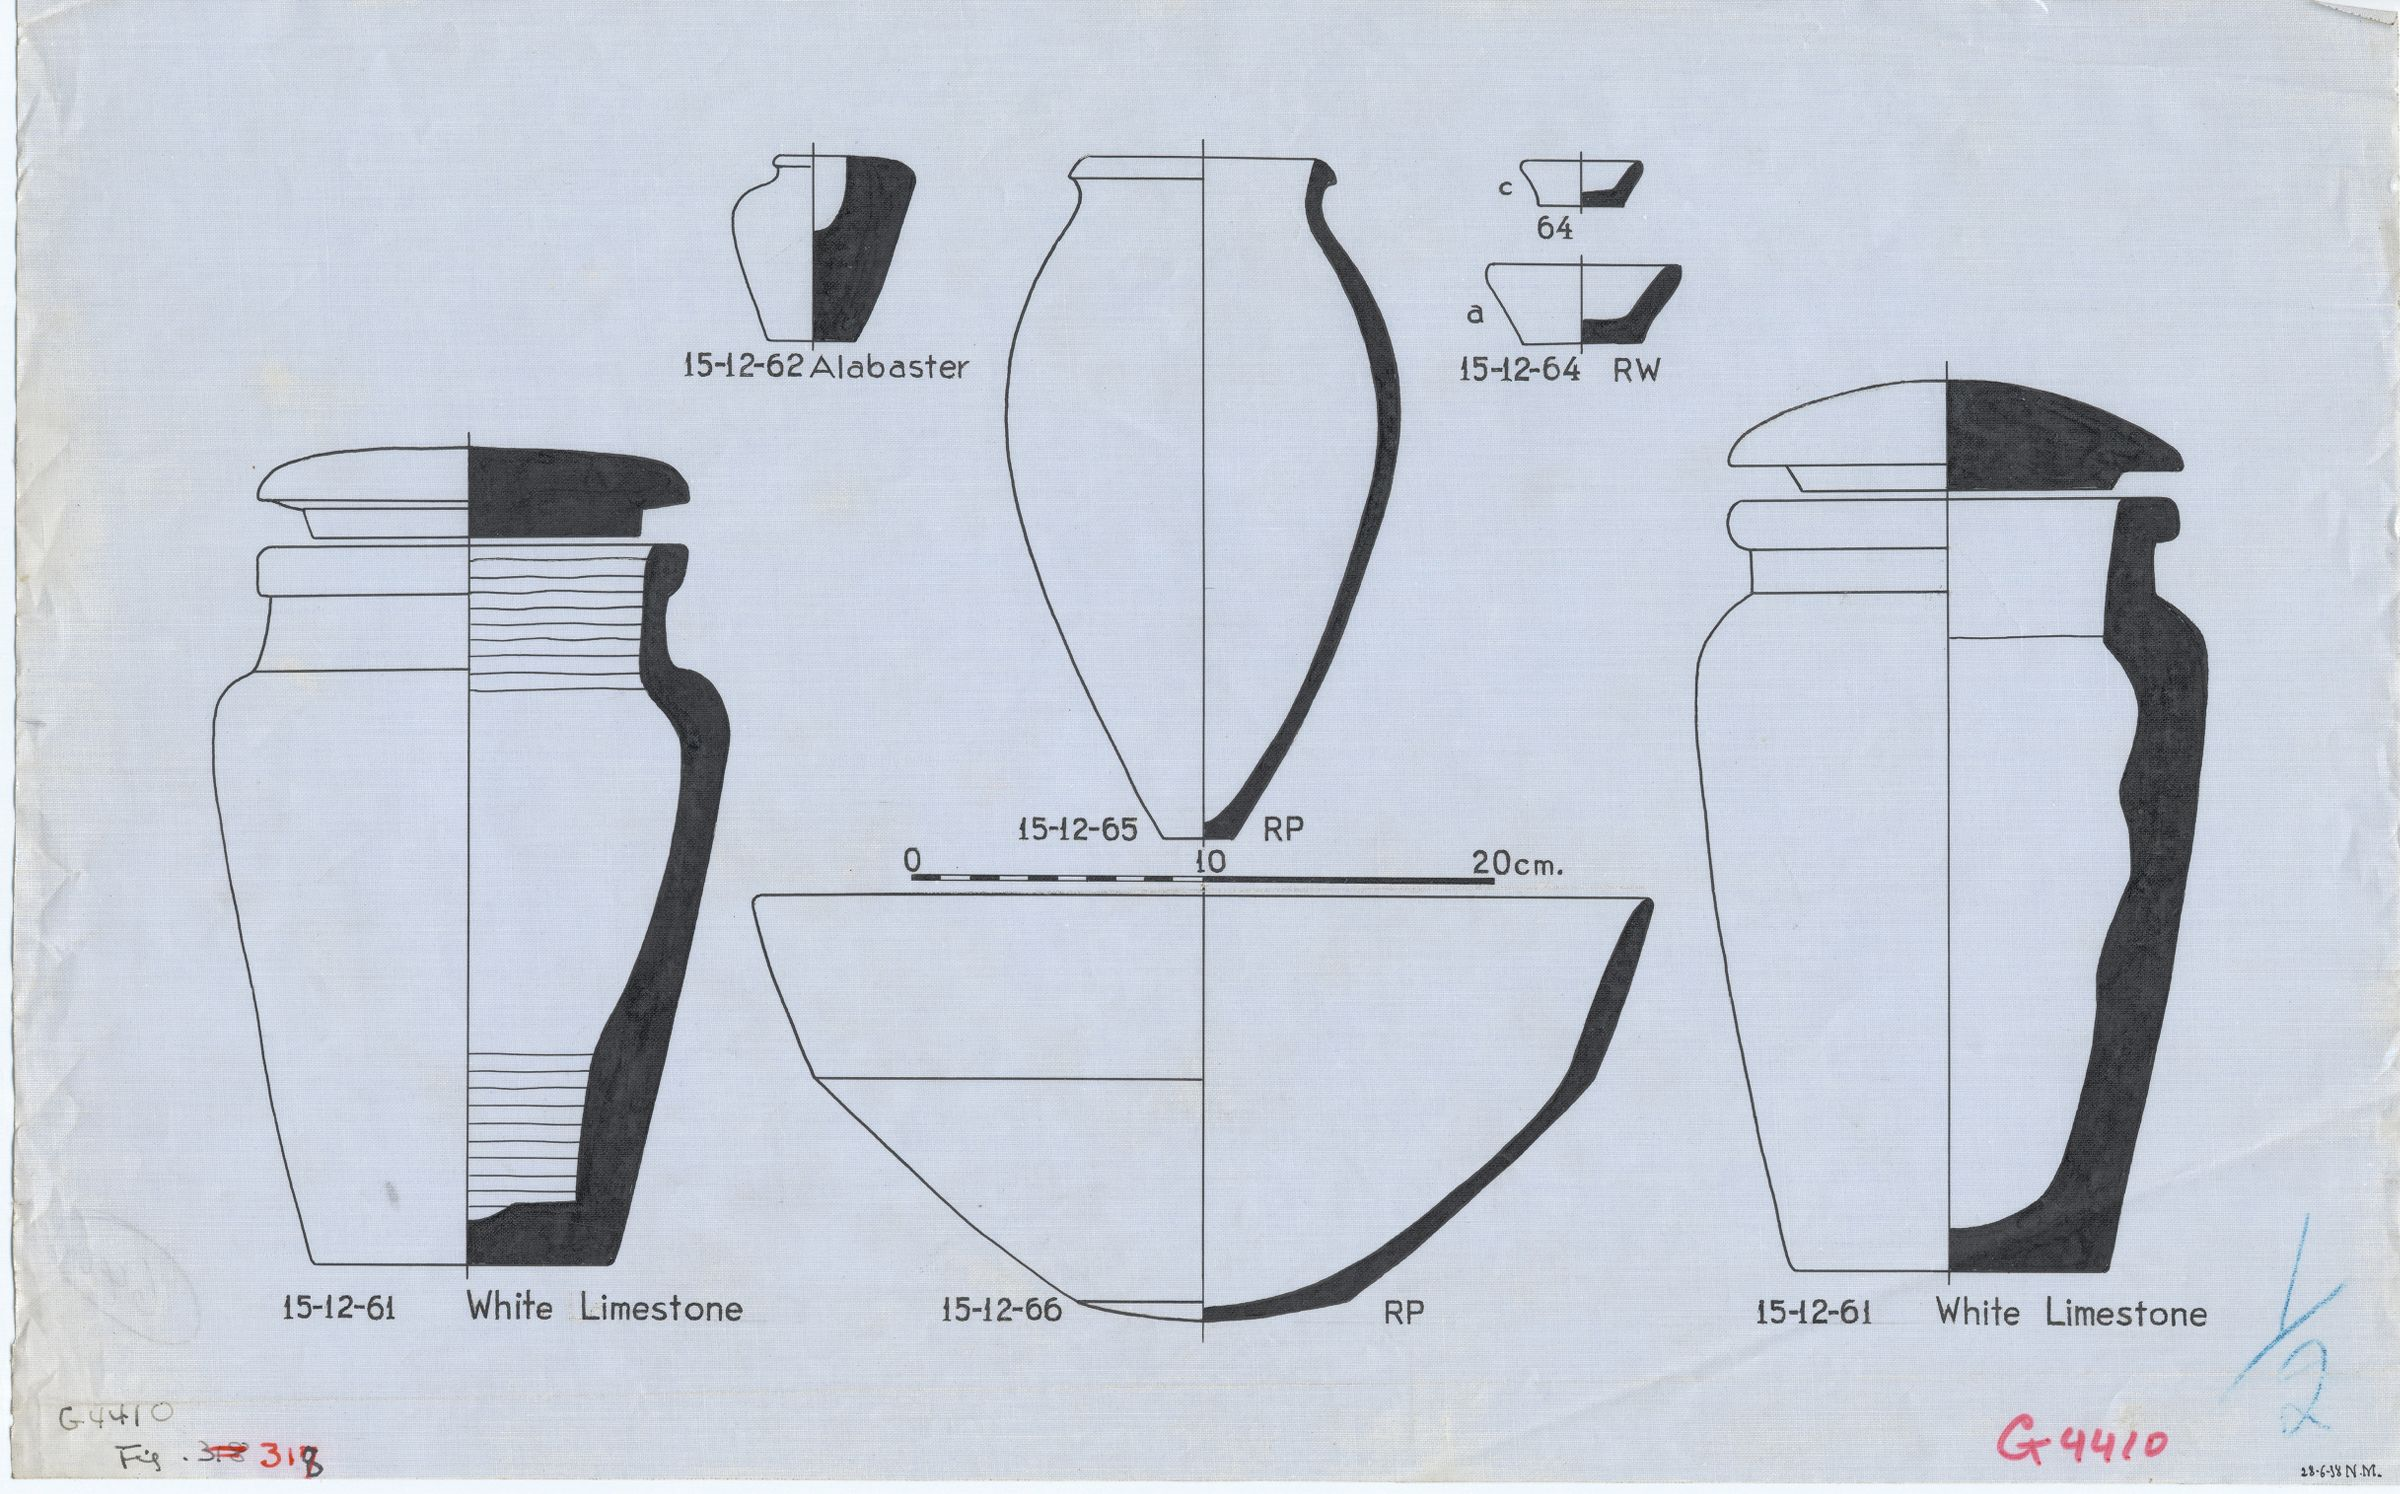 Drawings: G 4410, Shaft A: objects